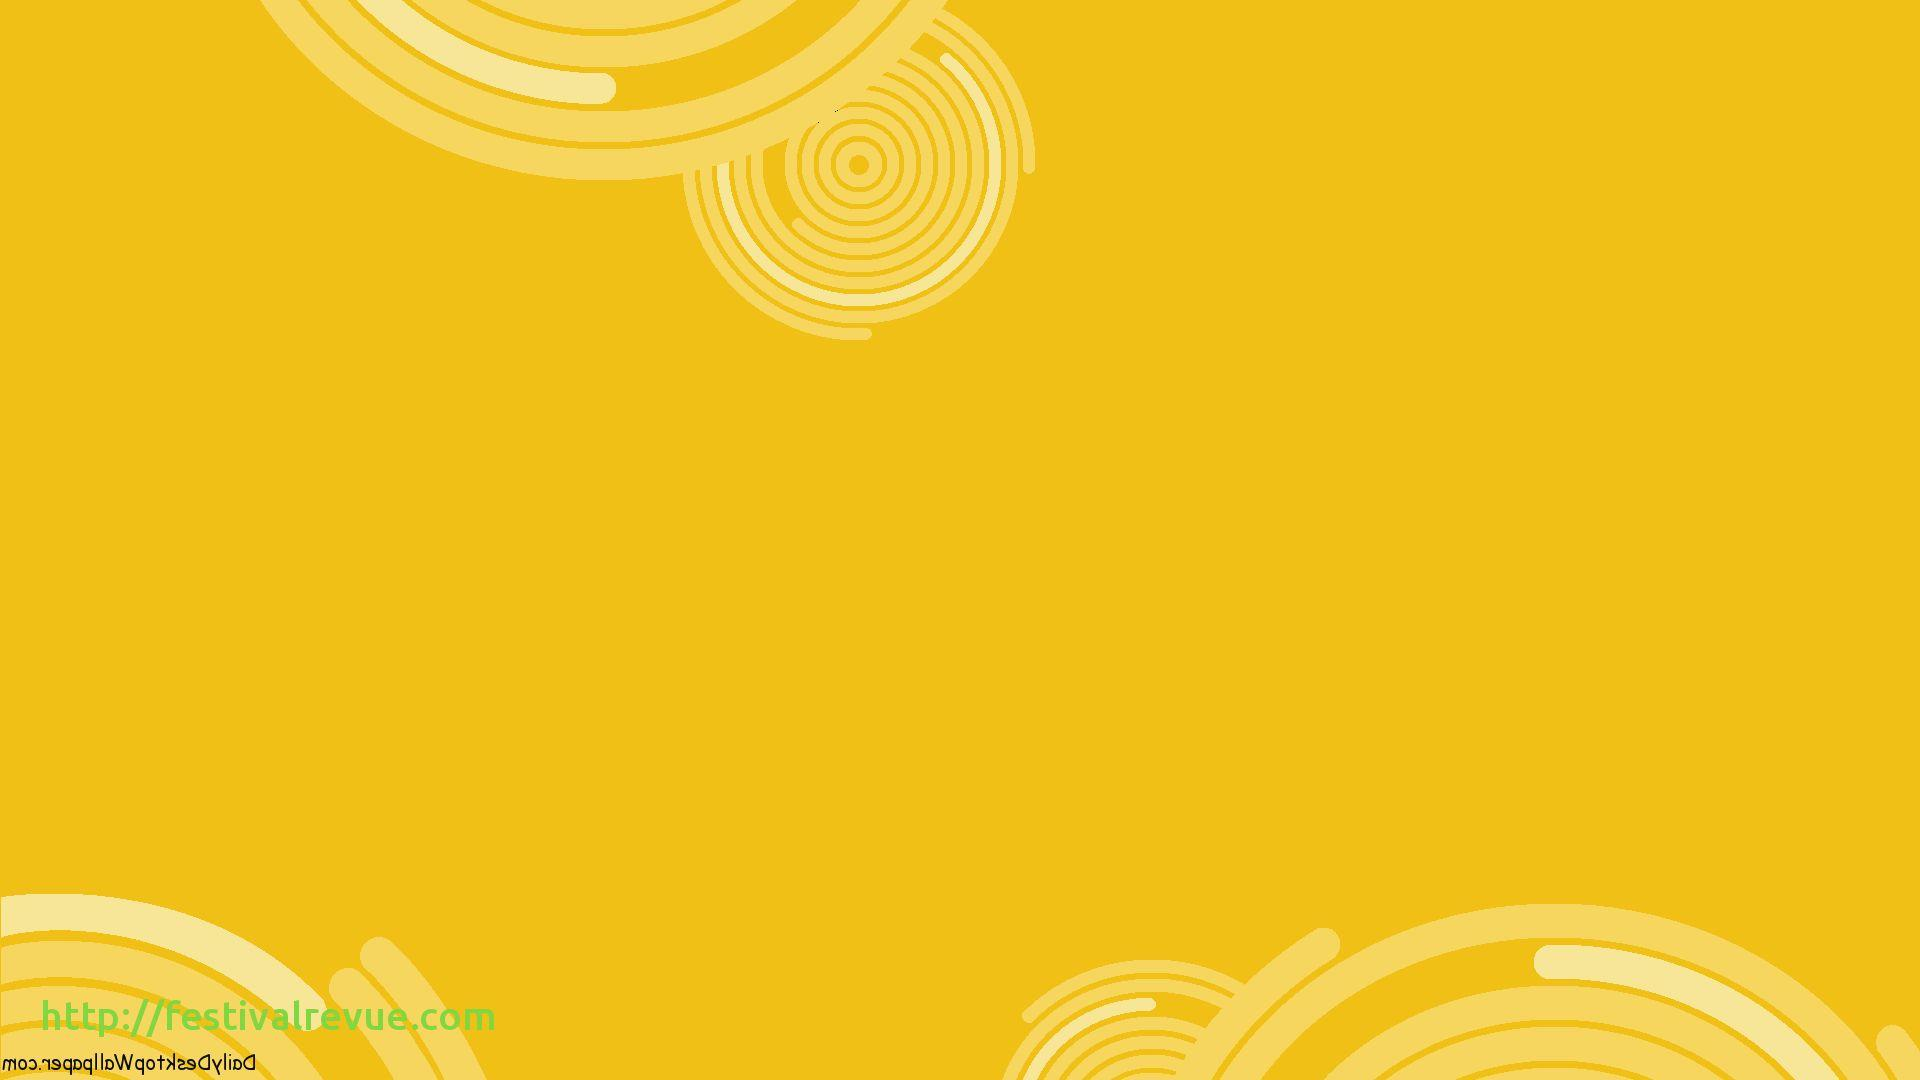 Aesthetic Yellow Wallpapers - Wallpaper Cave